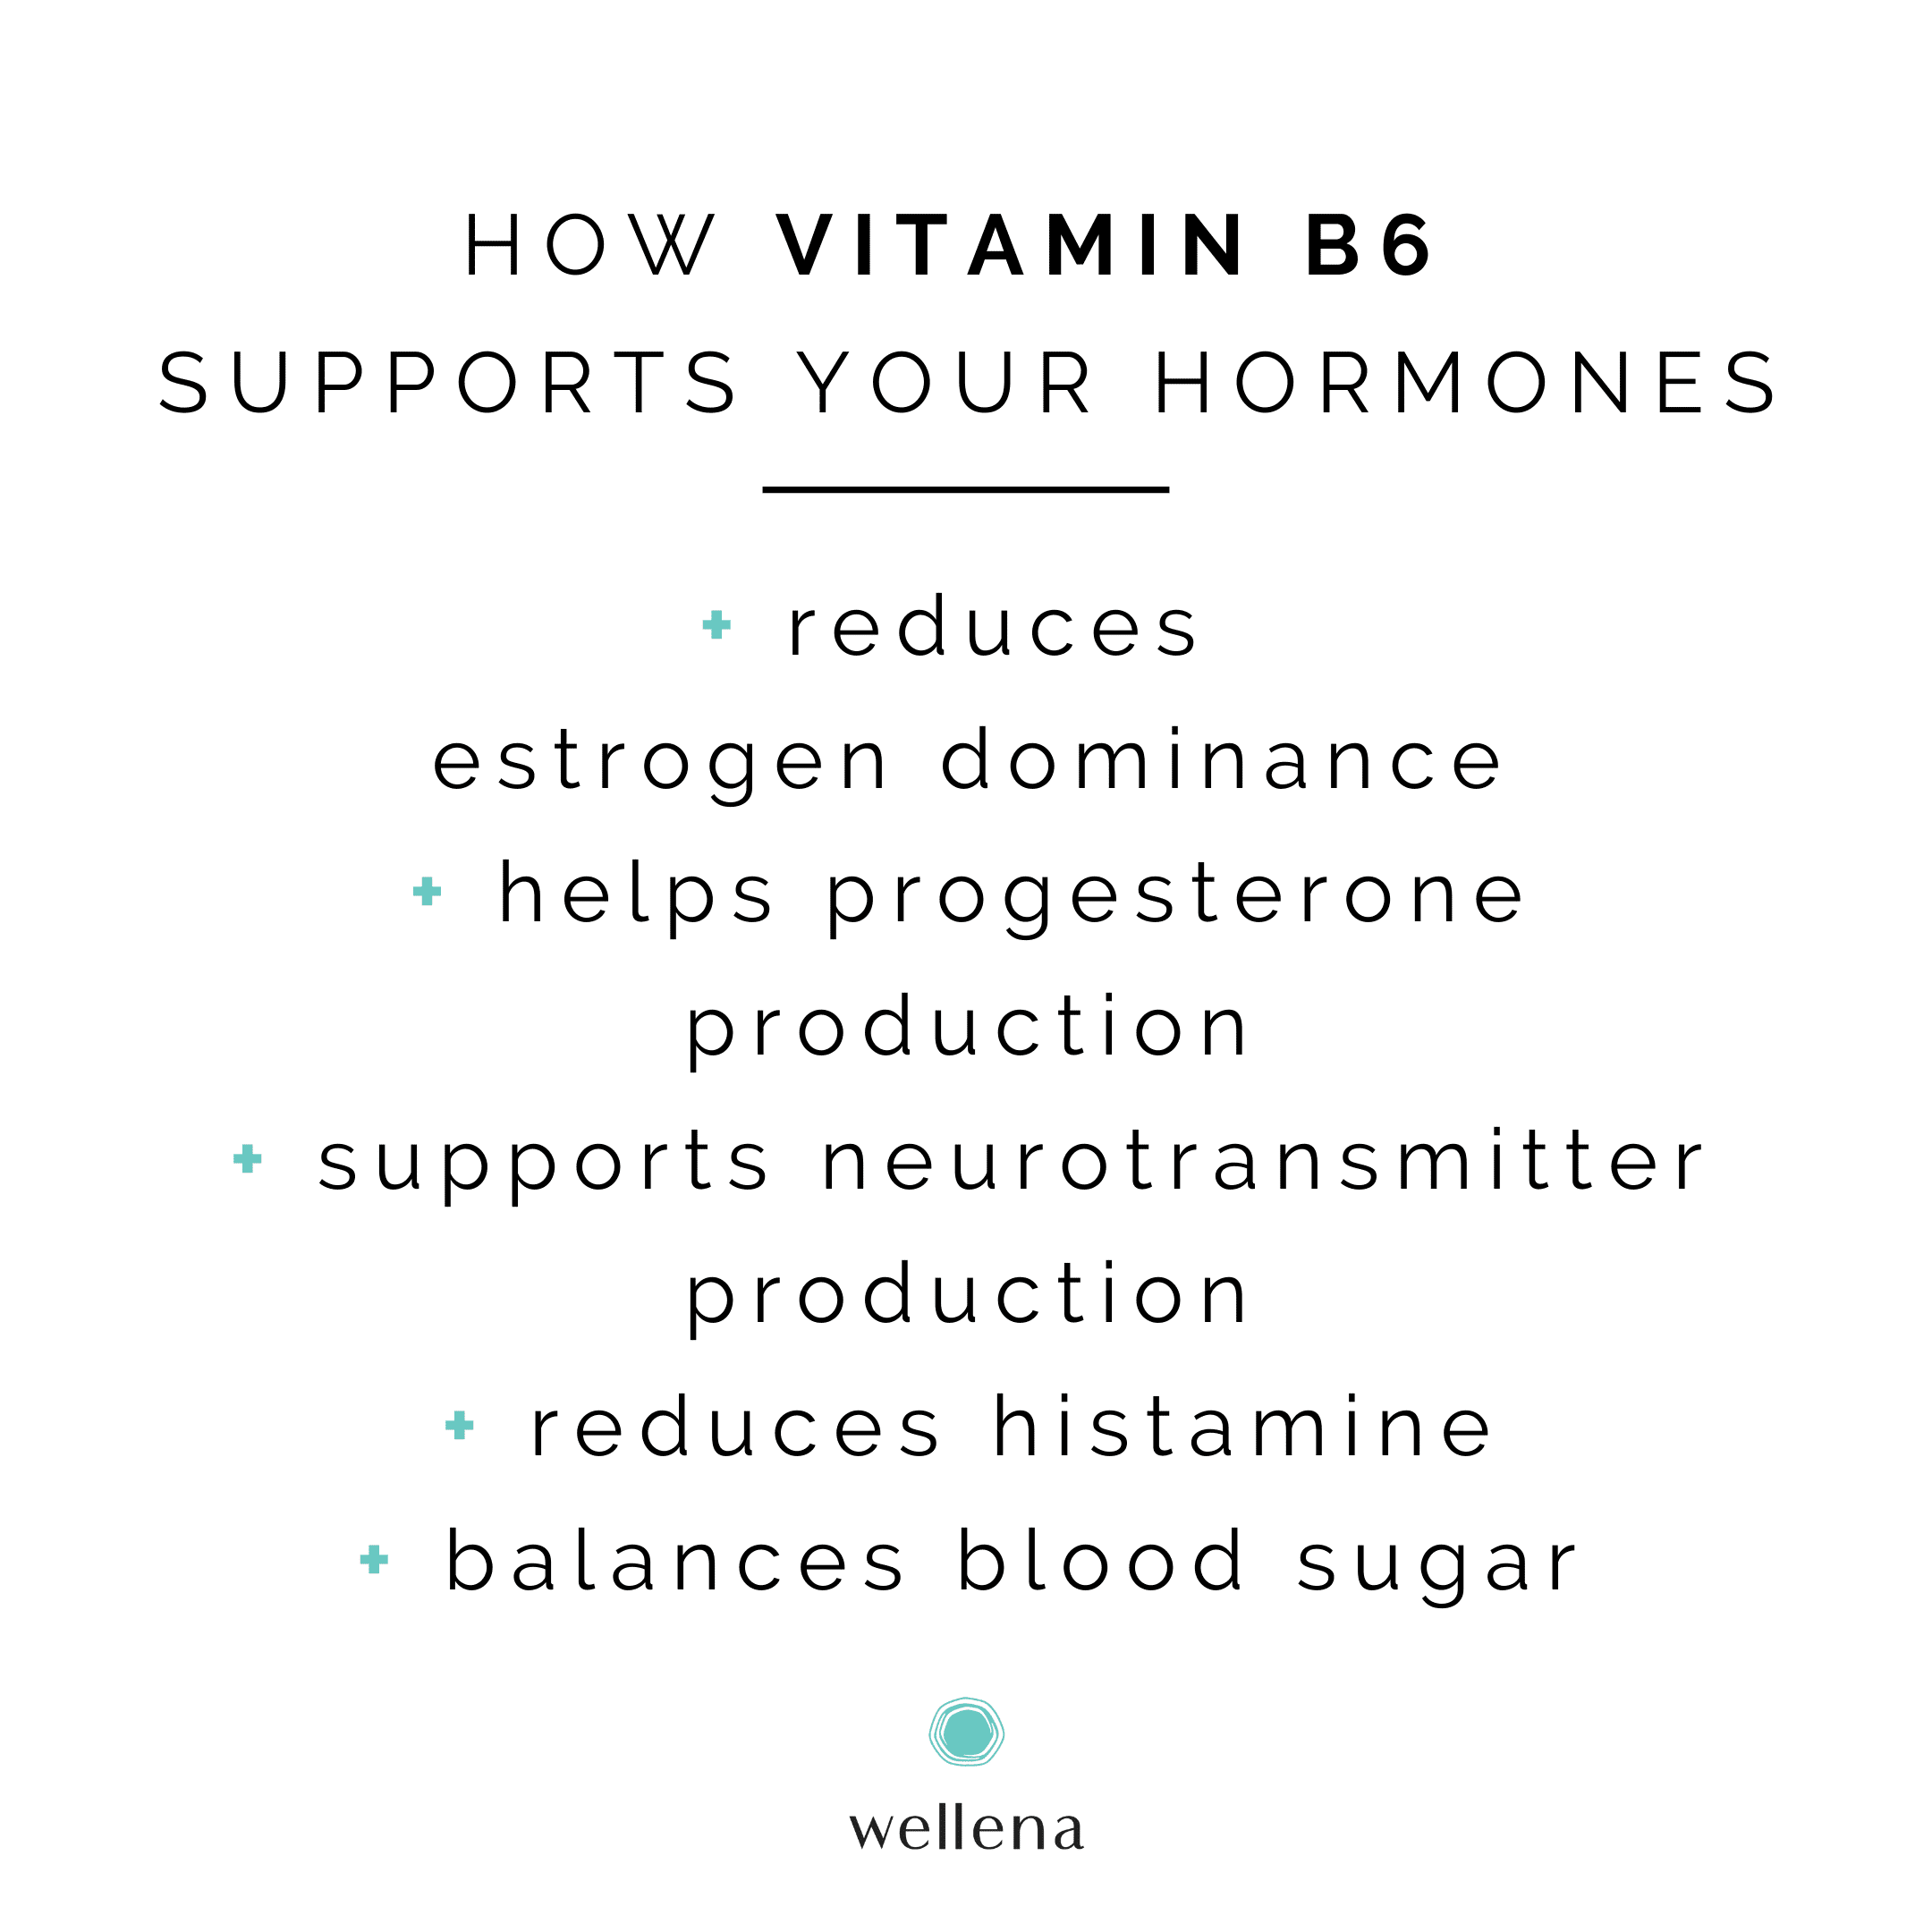 What Are the Benefits of B6 for Hormones?